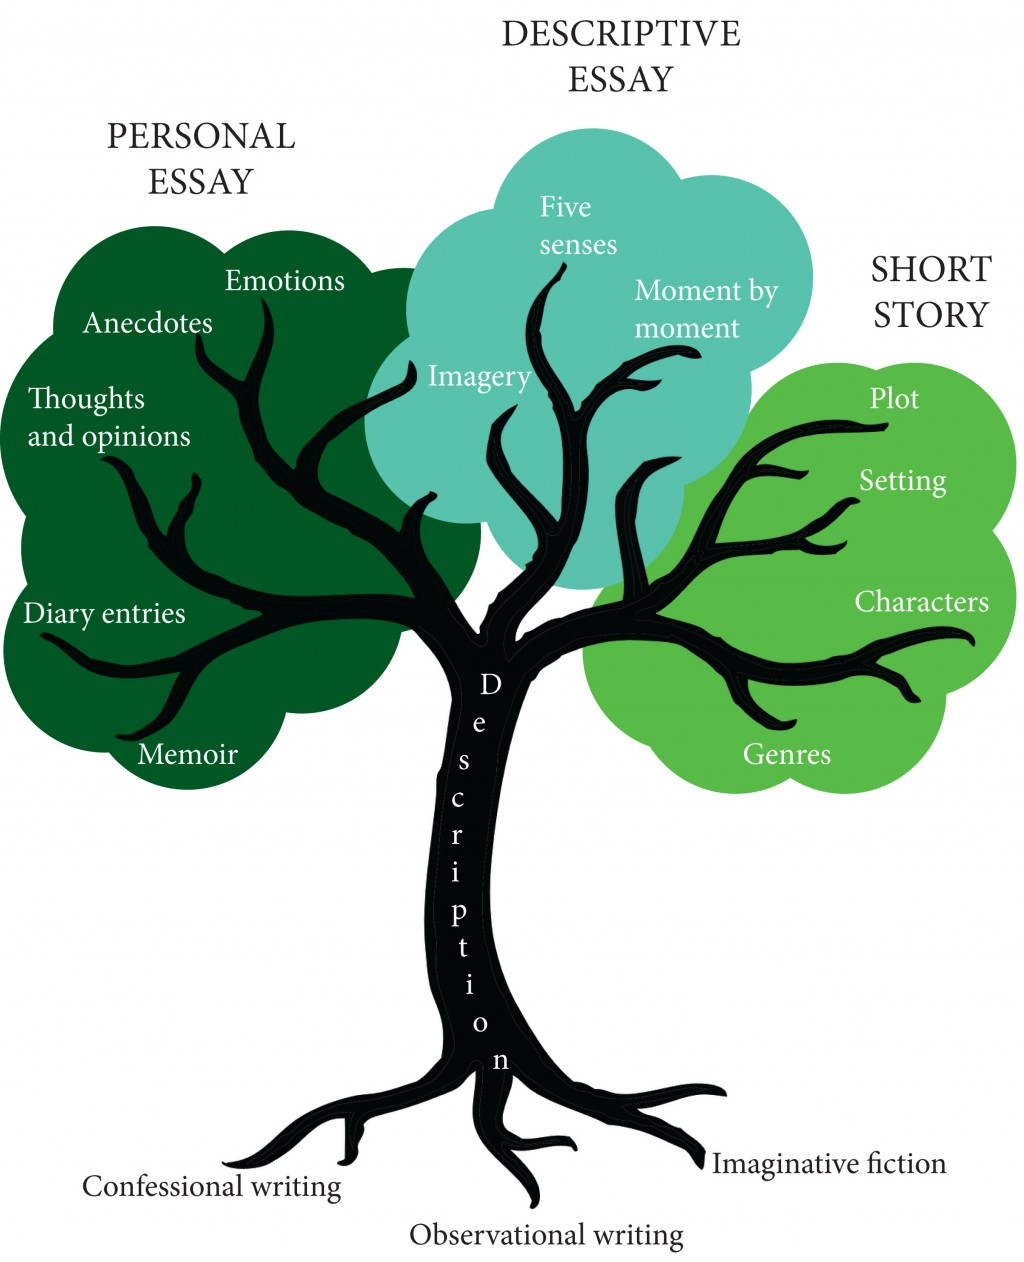 007 Tree Diagram Elements Of Descriptive Essay Exceptional Key A And Features Large